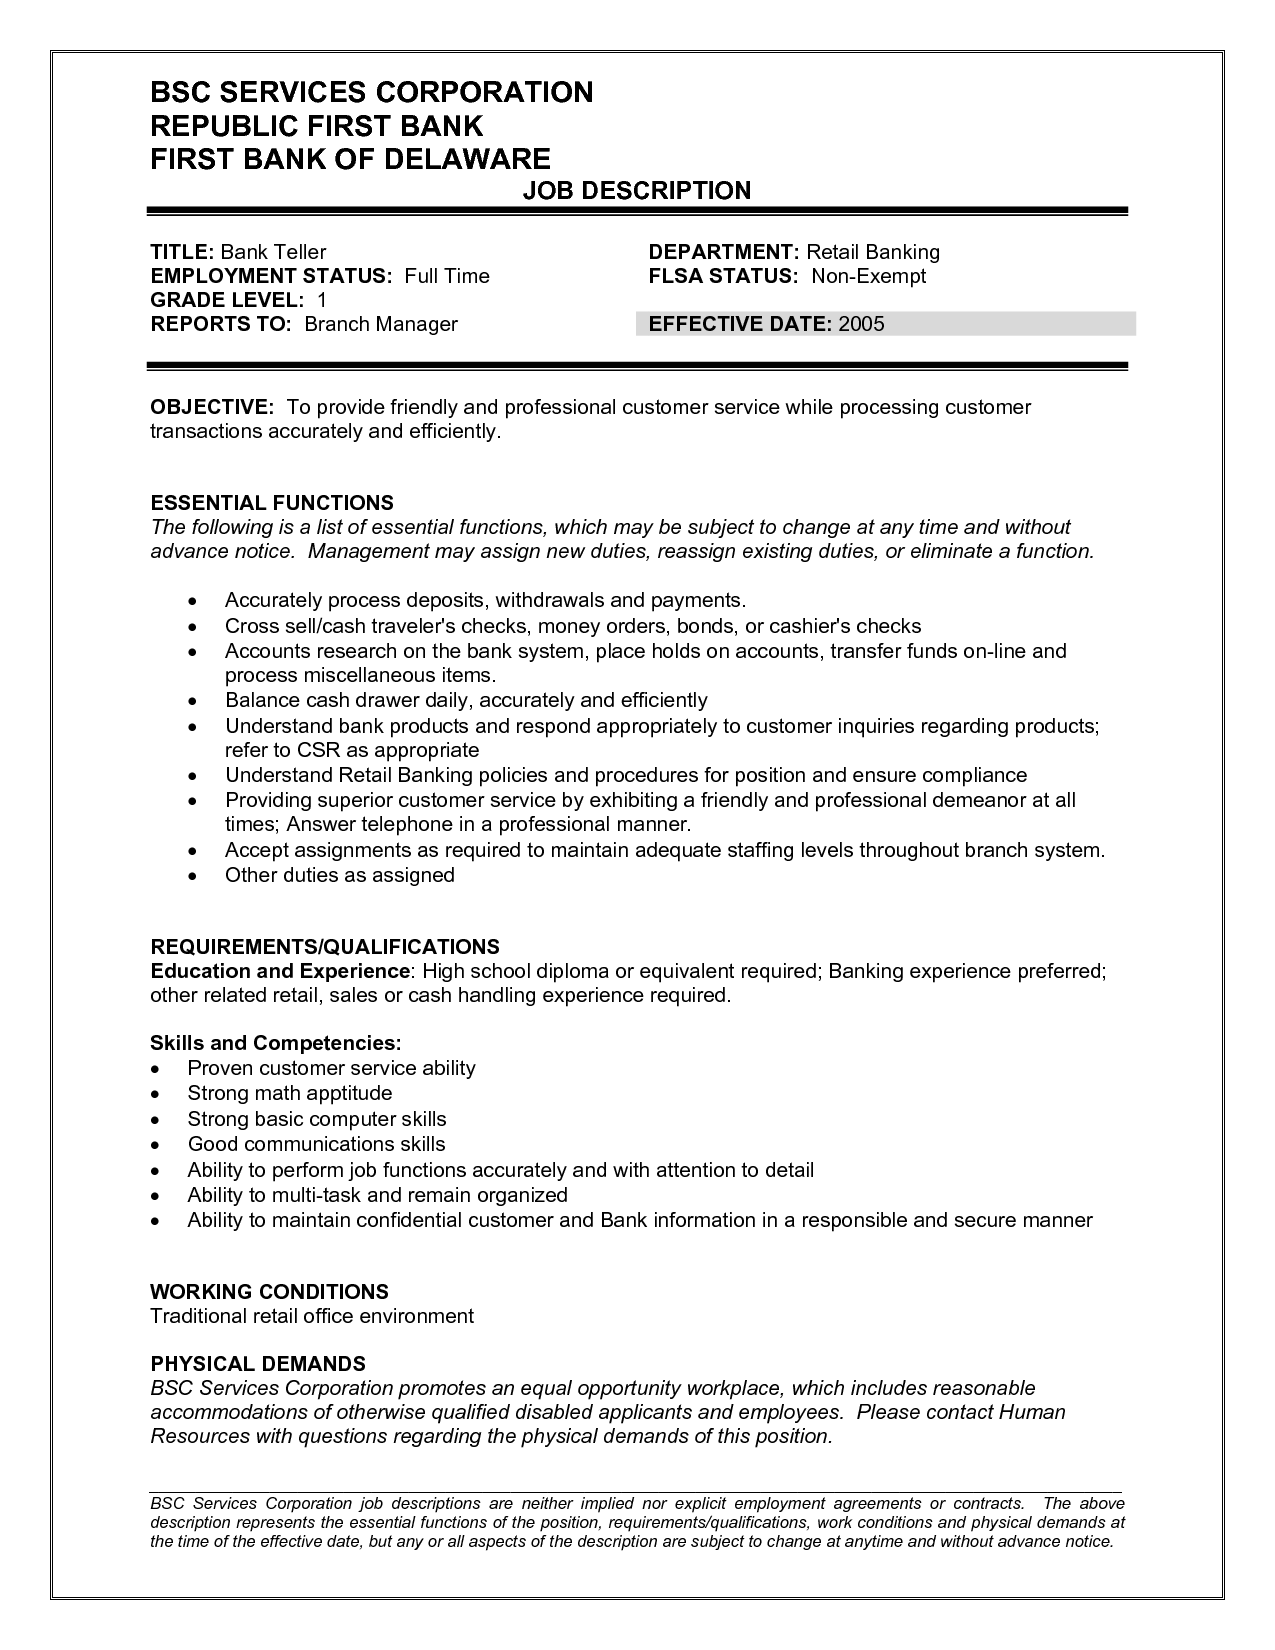 Bank Teller Job Description For Resume  HttpResumesdesignCom